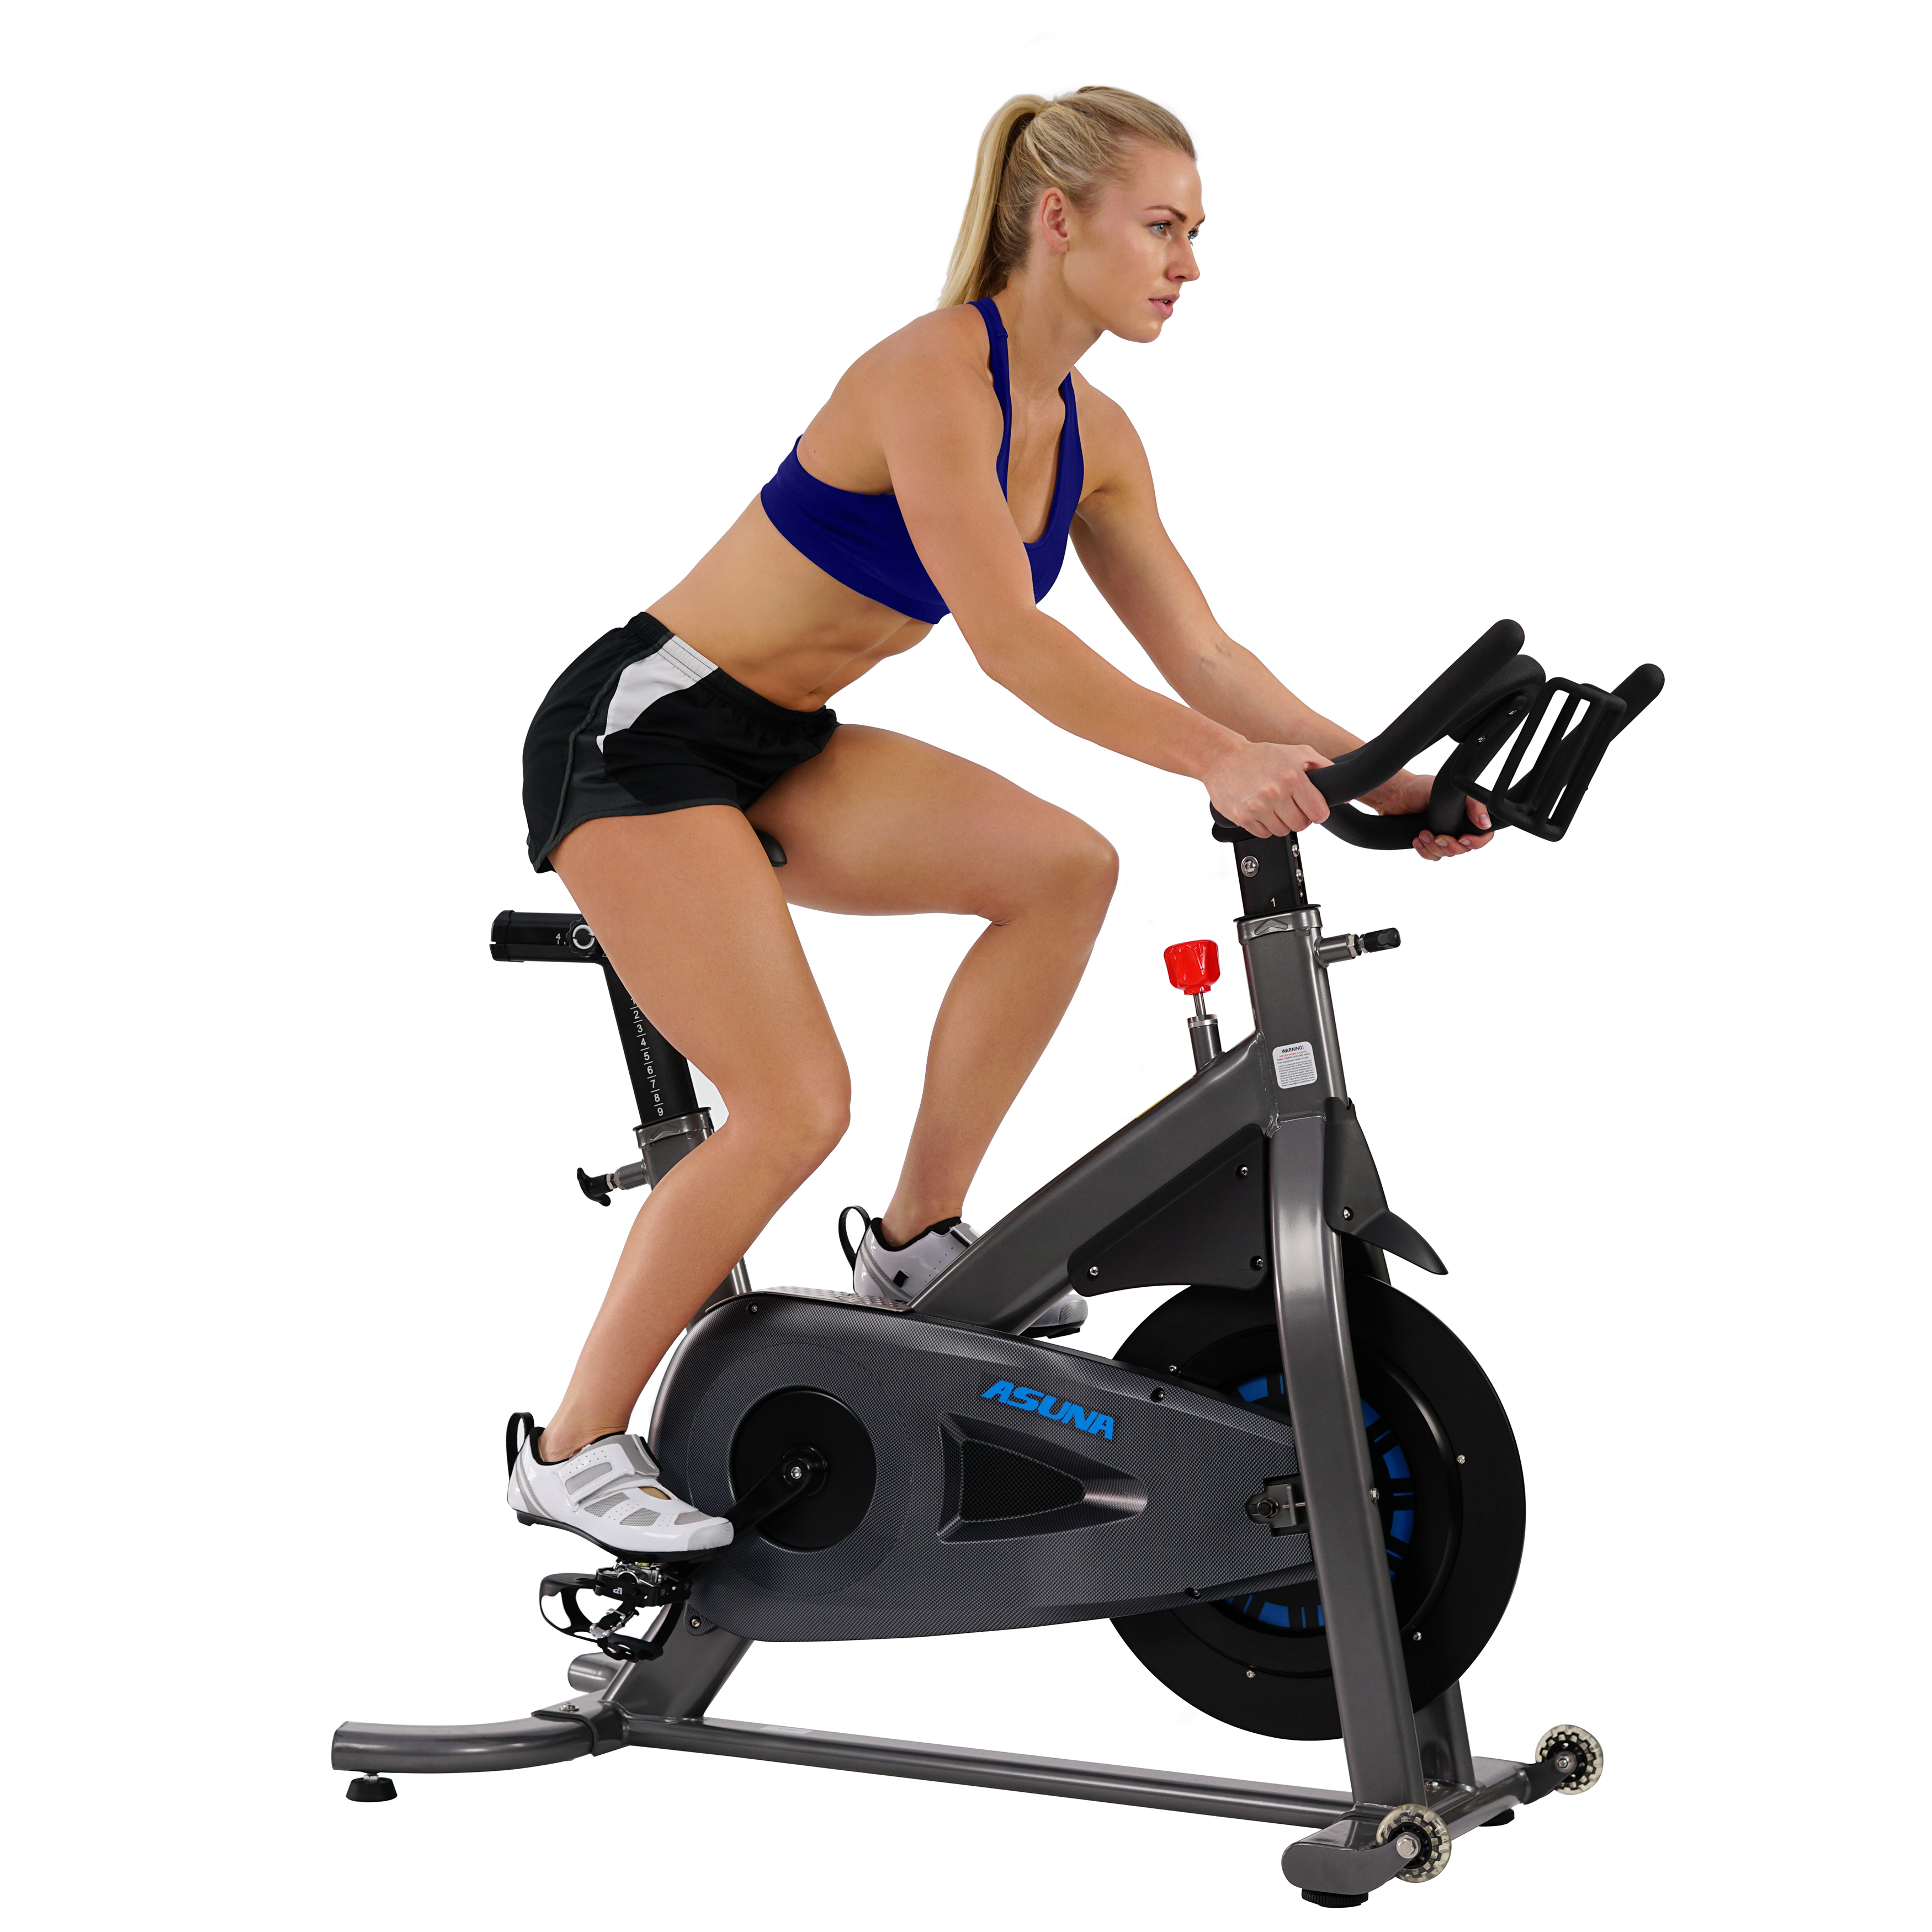 ASUNA 5150 Magnetic Turbo Exercise Indoor Cycling Bike Trainer